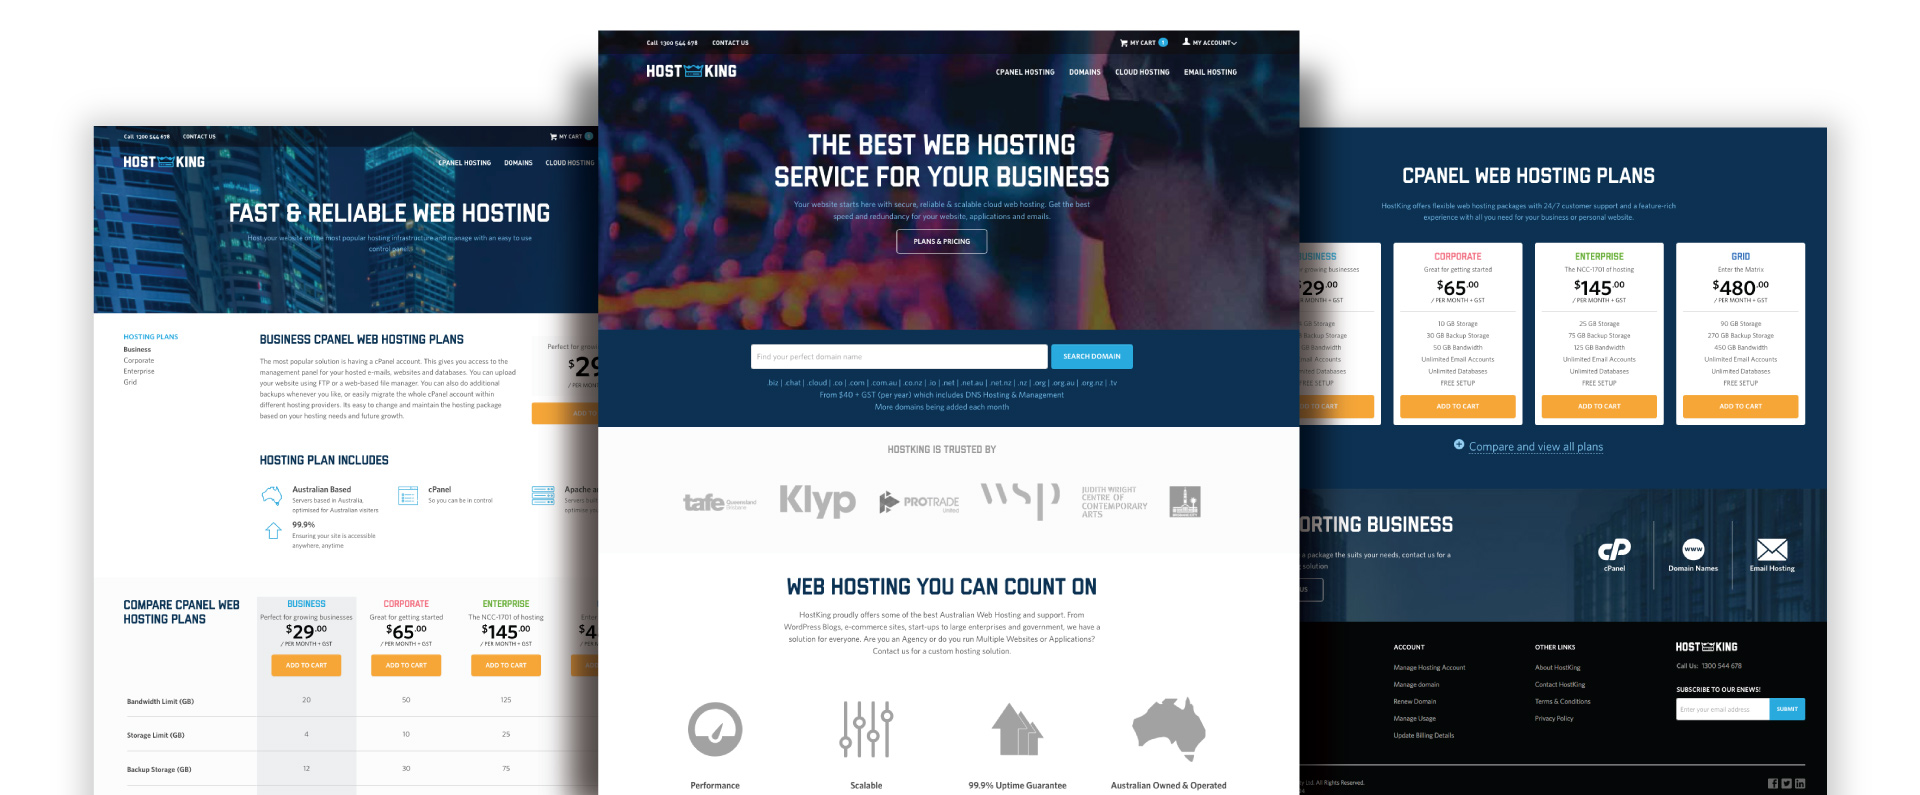 Hostking website design